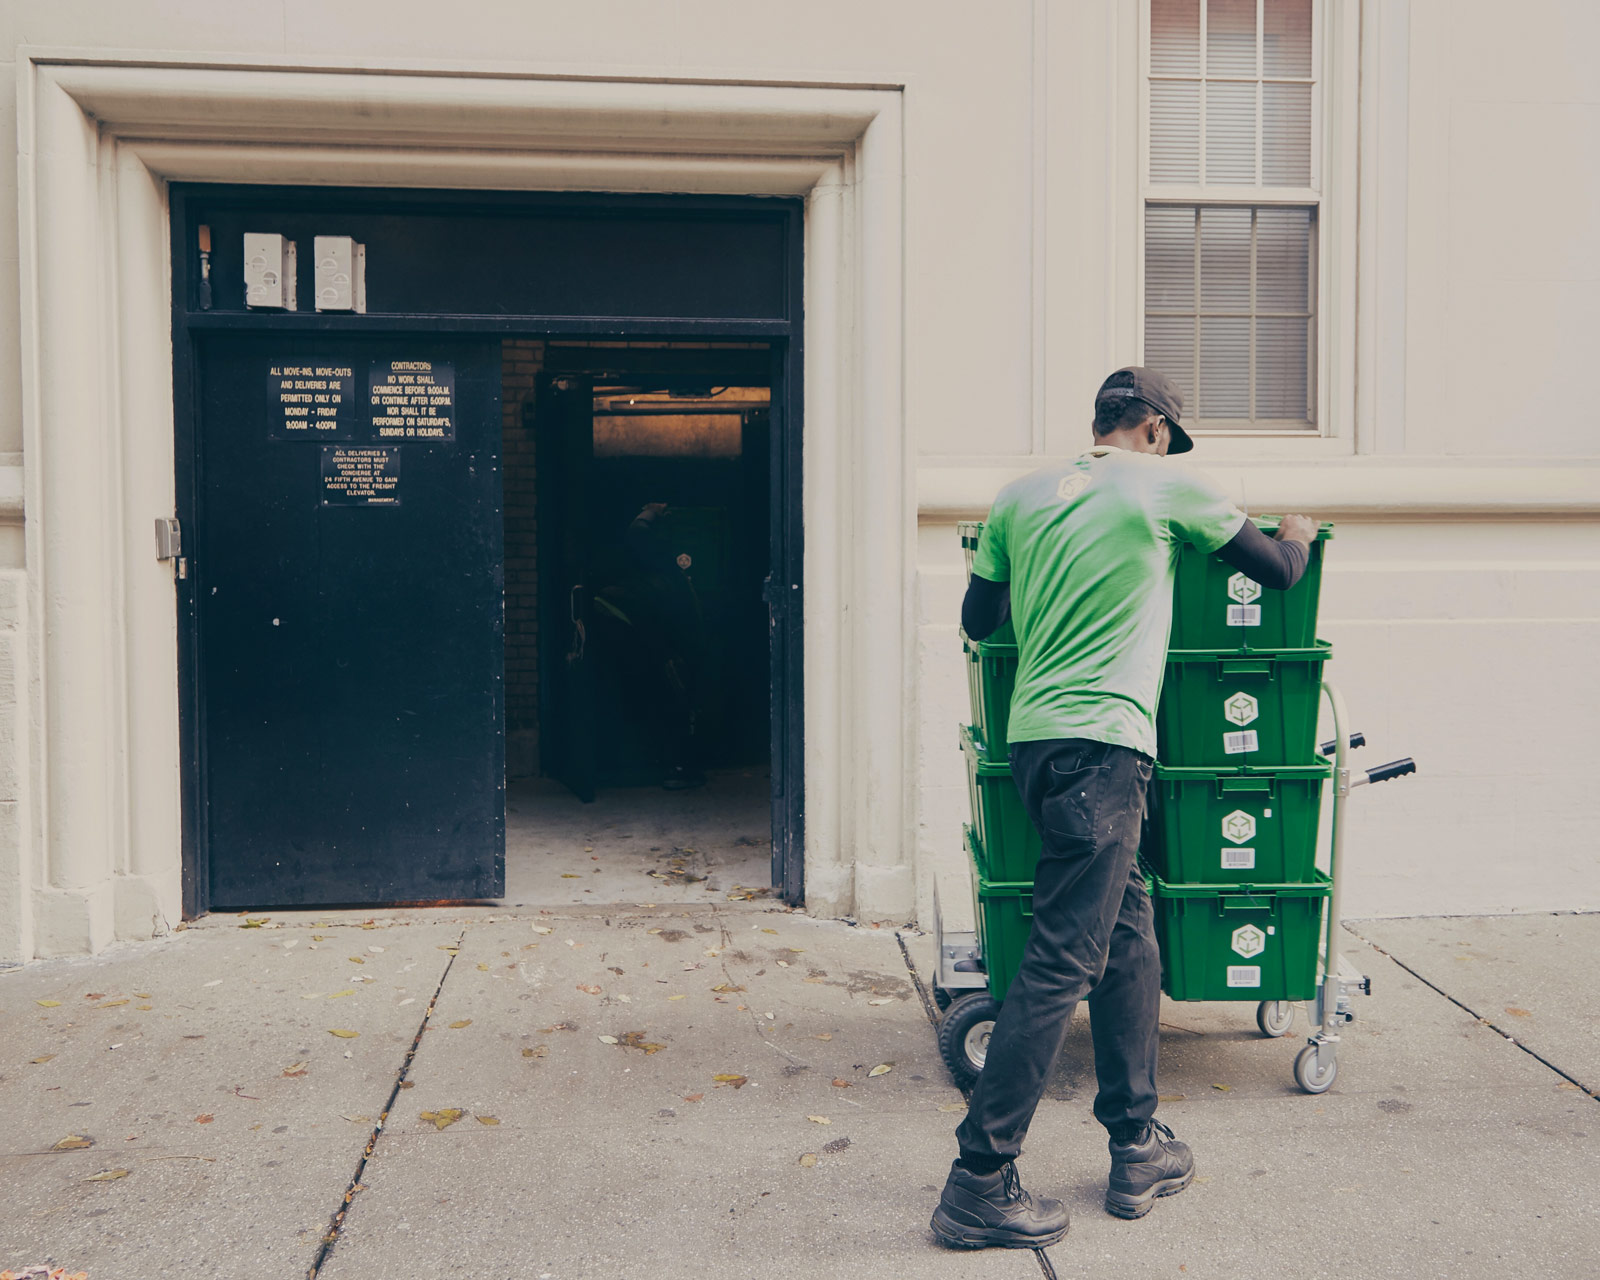 Darrell Green, a MakeSpace Uploader, father, and veteran is wheeling MakeSpace storage bins outside of a building in NYC.